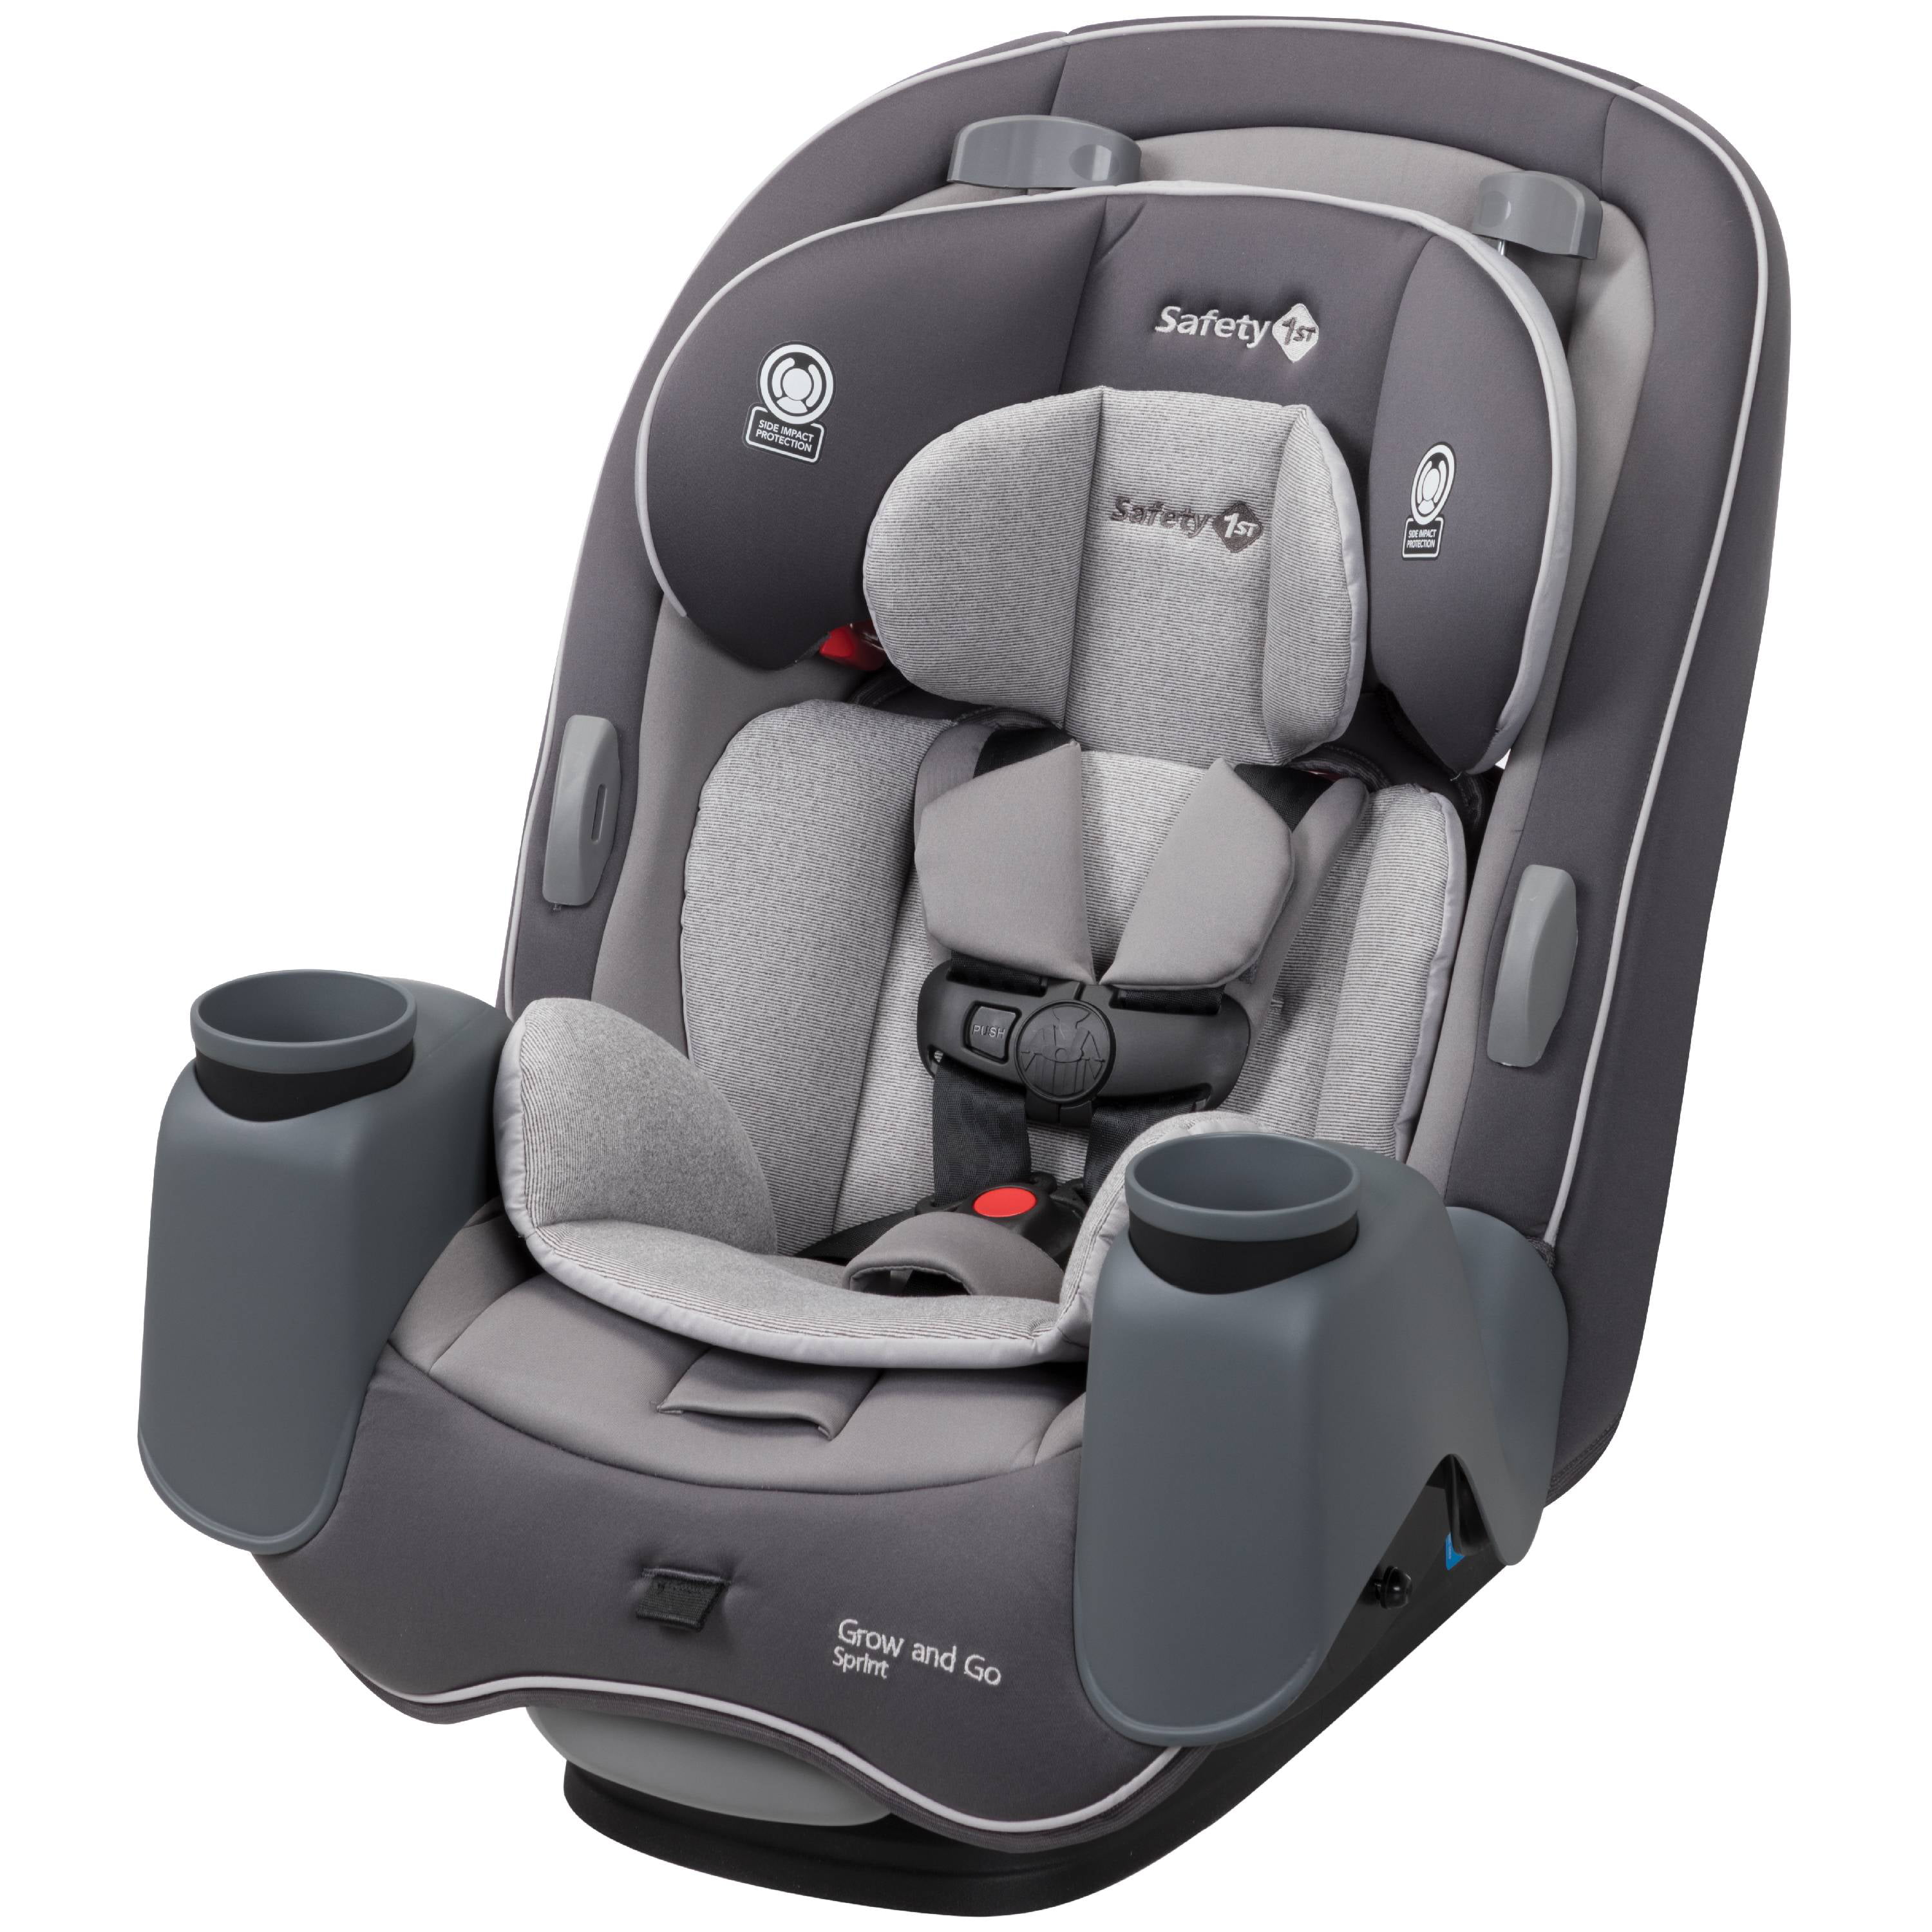 Go Sprint 3-in-1 Convertible Car Seat